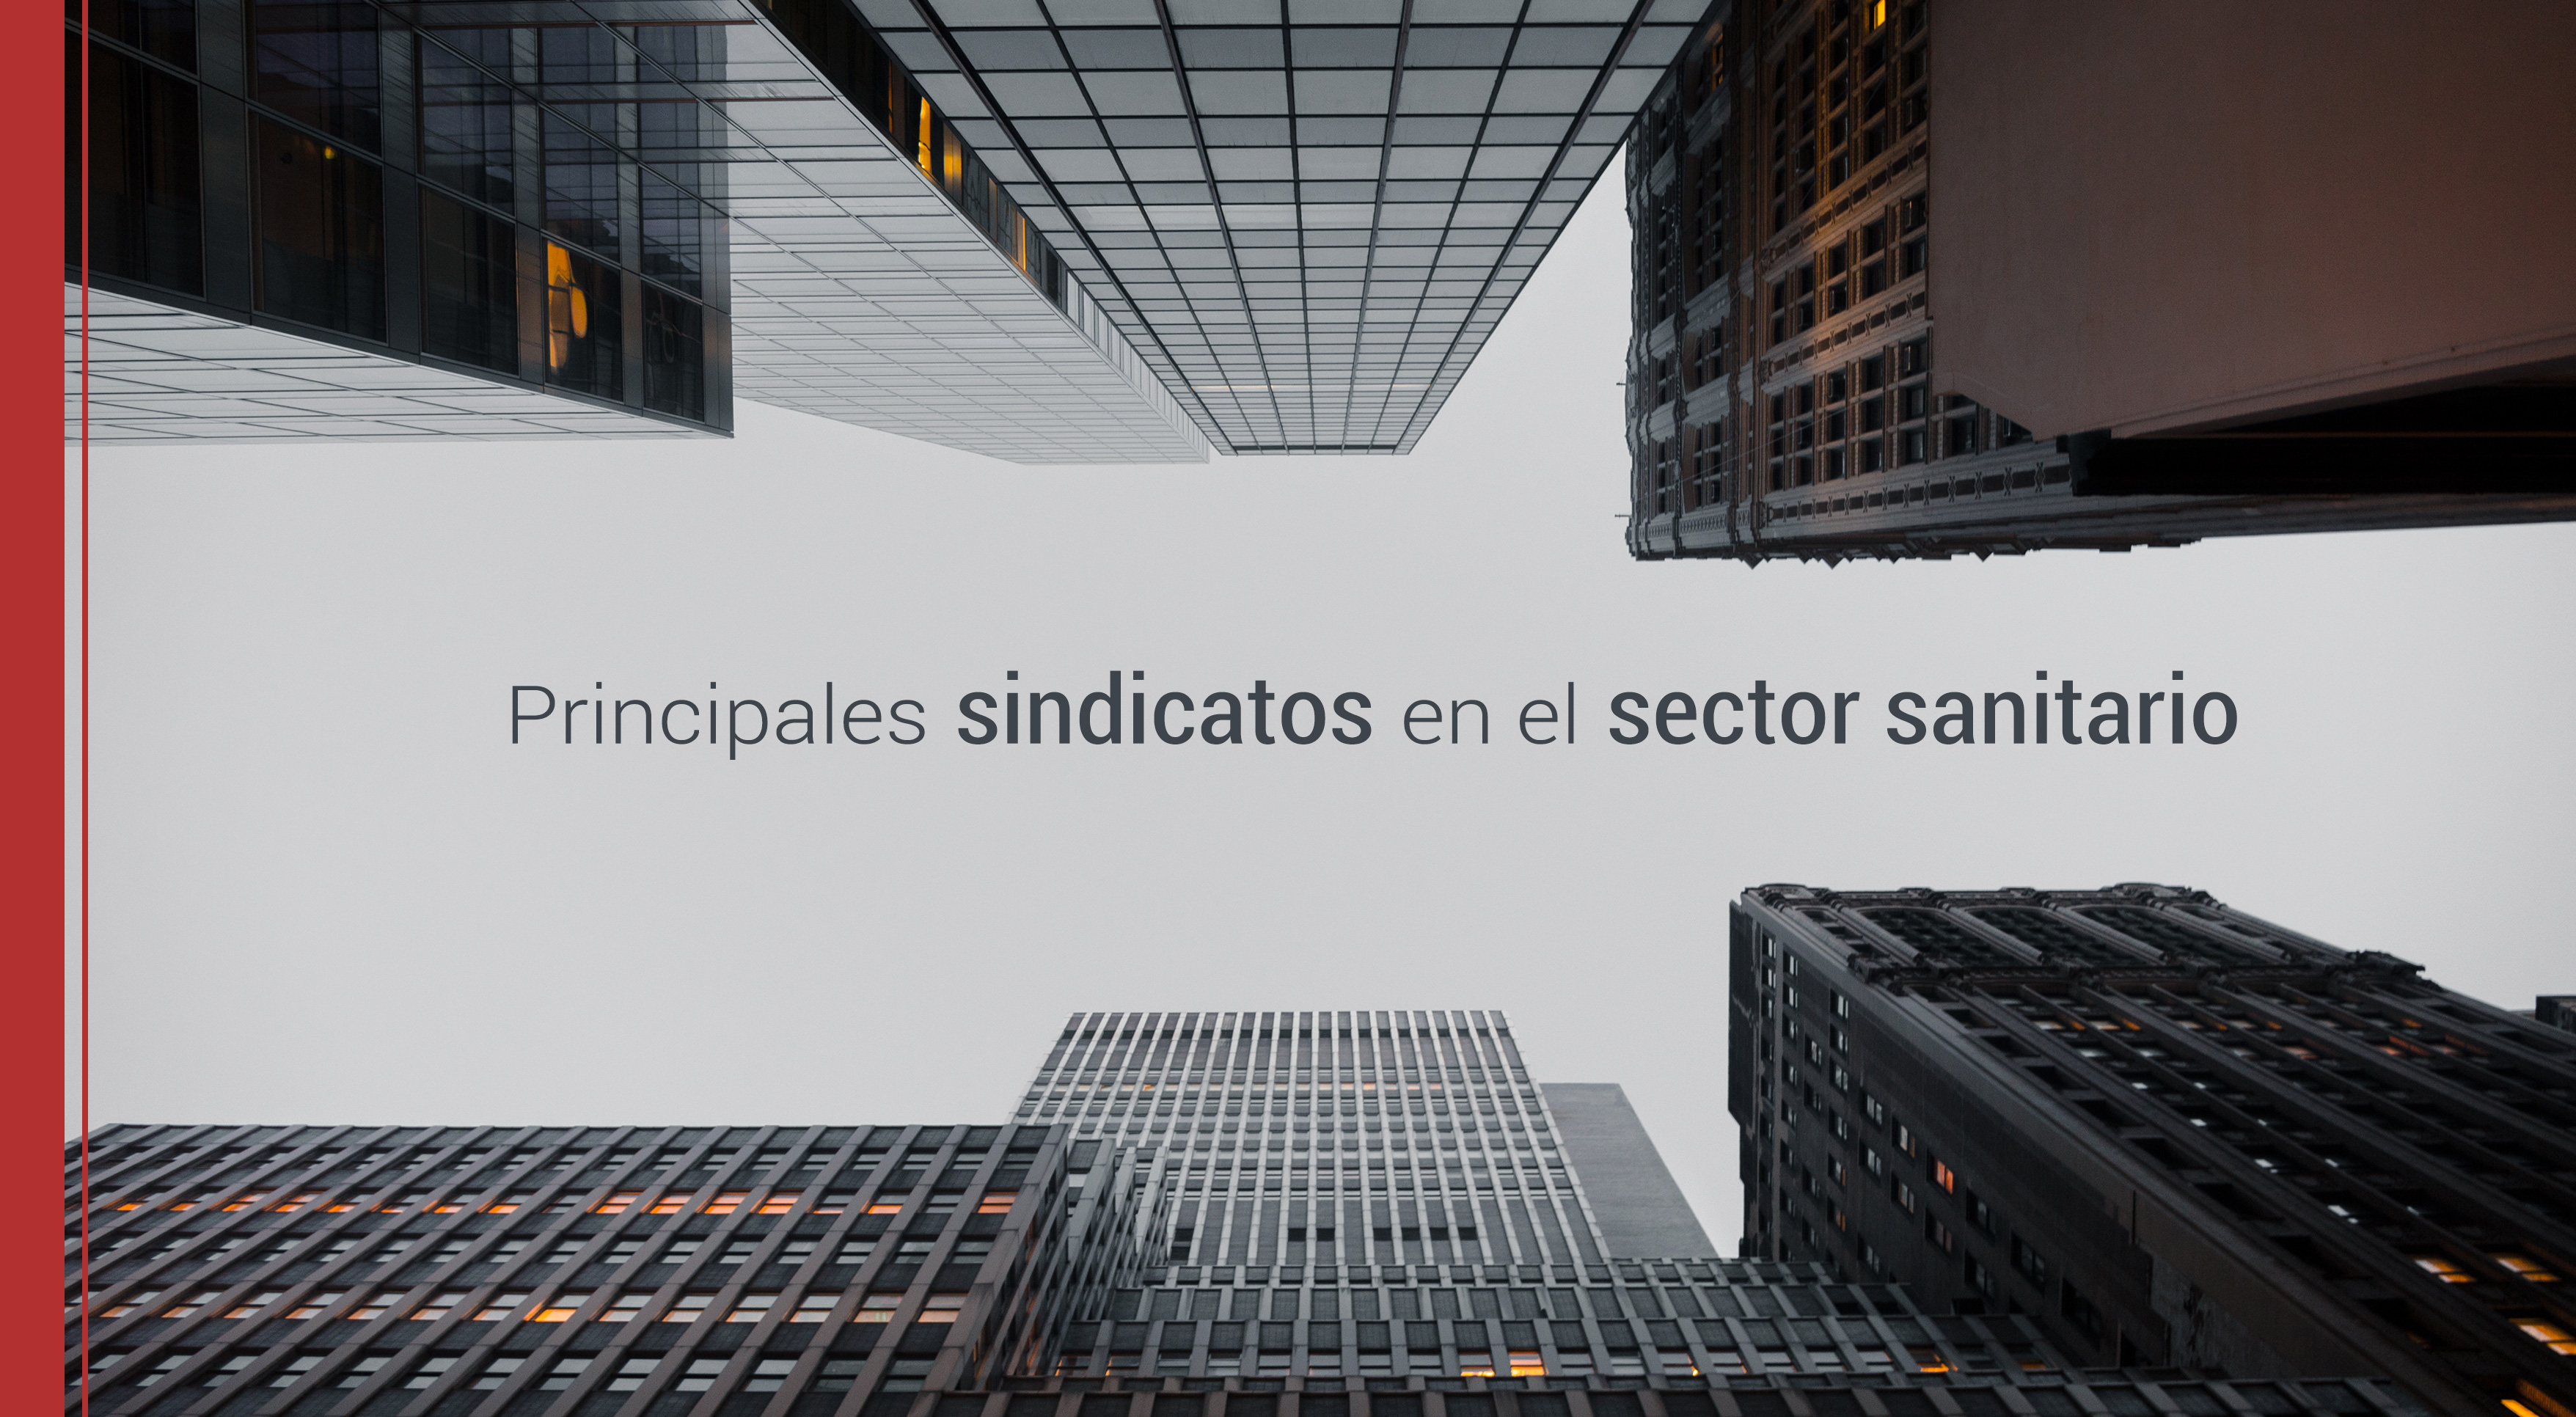 principales-sindicatos-sector-sanitario Principales sindicatos en el sector sanitario